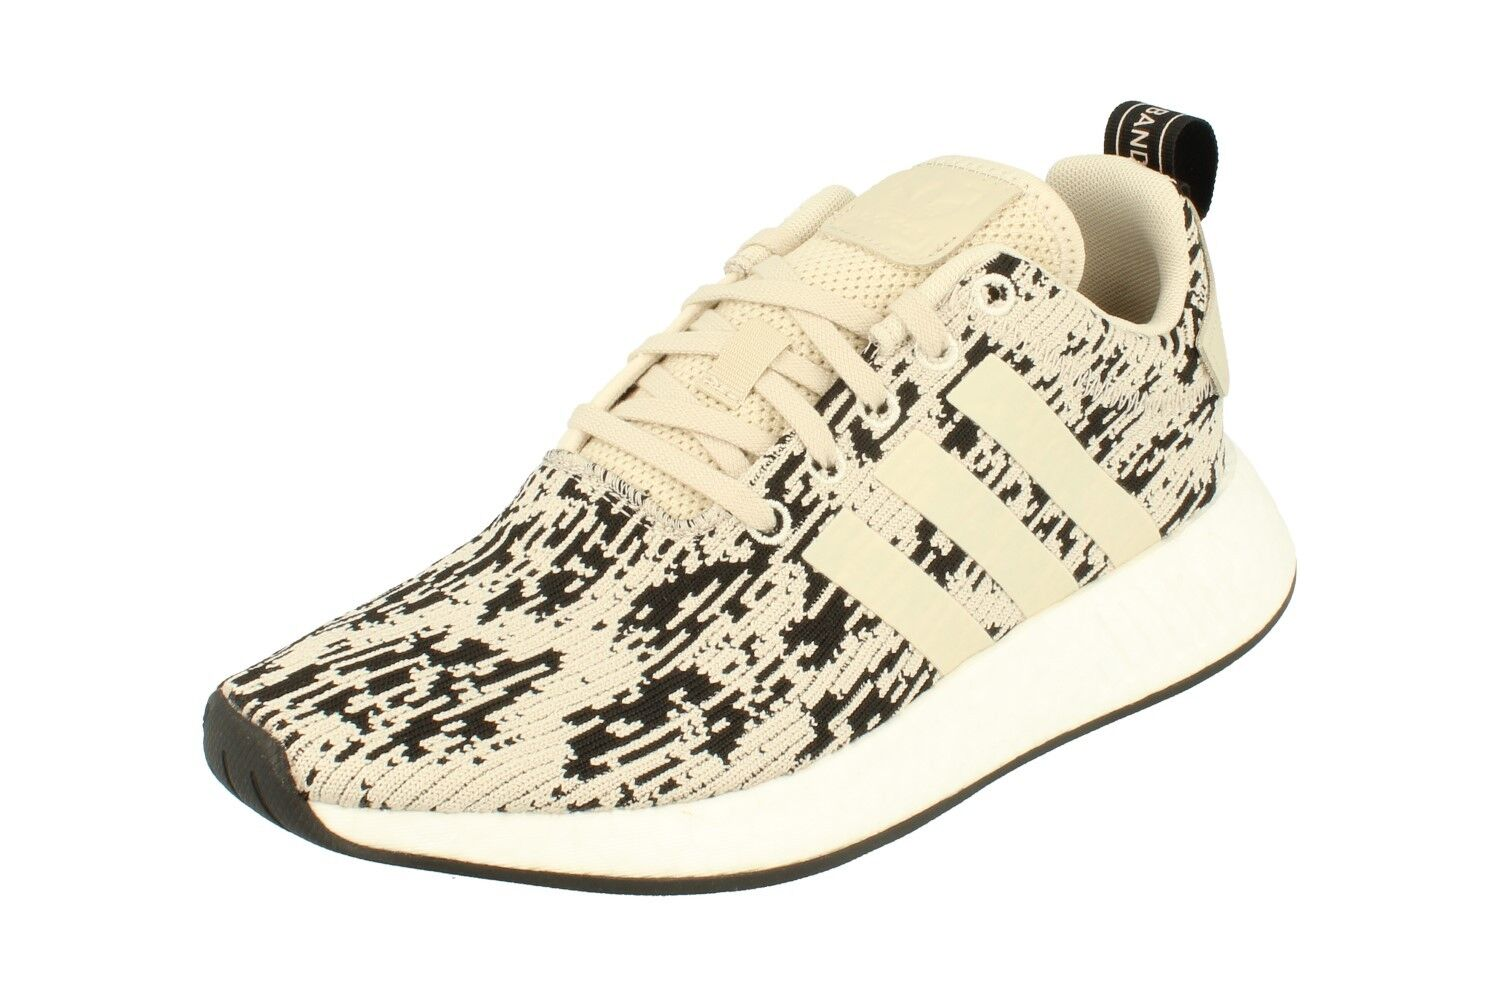 Adidas Originals Nmd_R2 hommes Running Trainers Sneakers BB6196